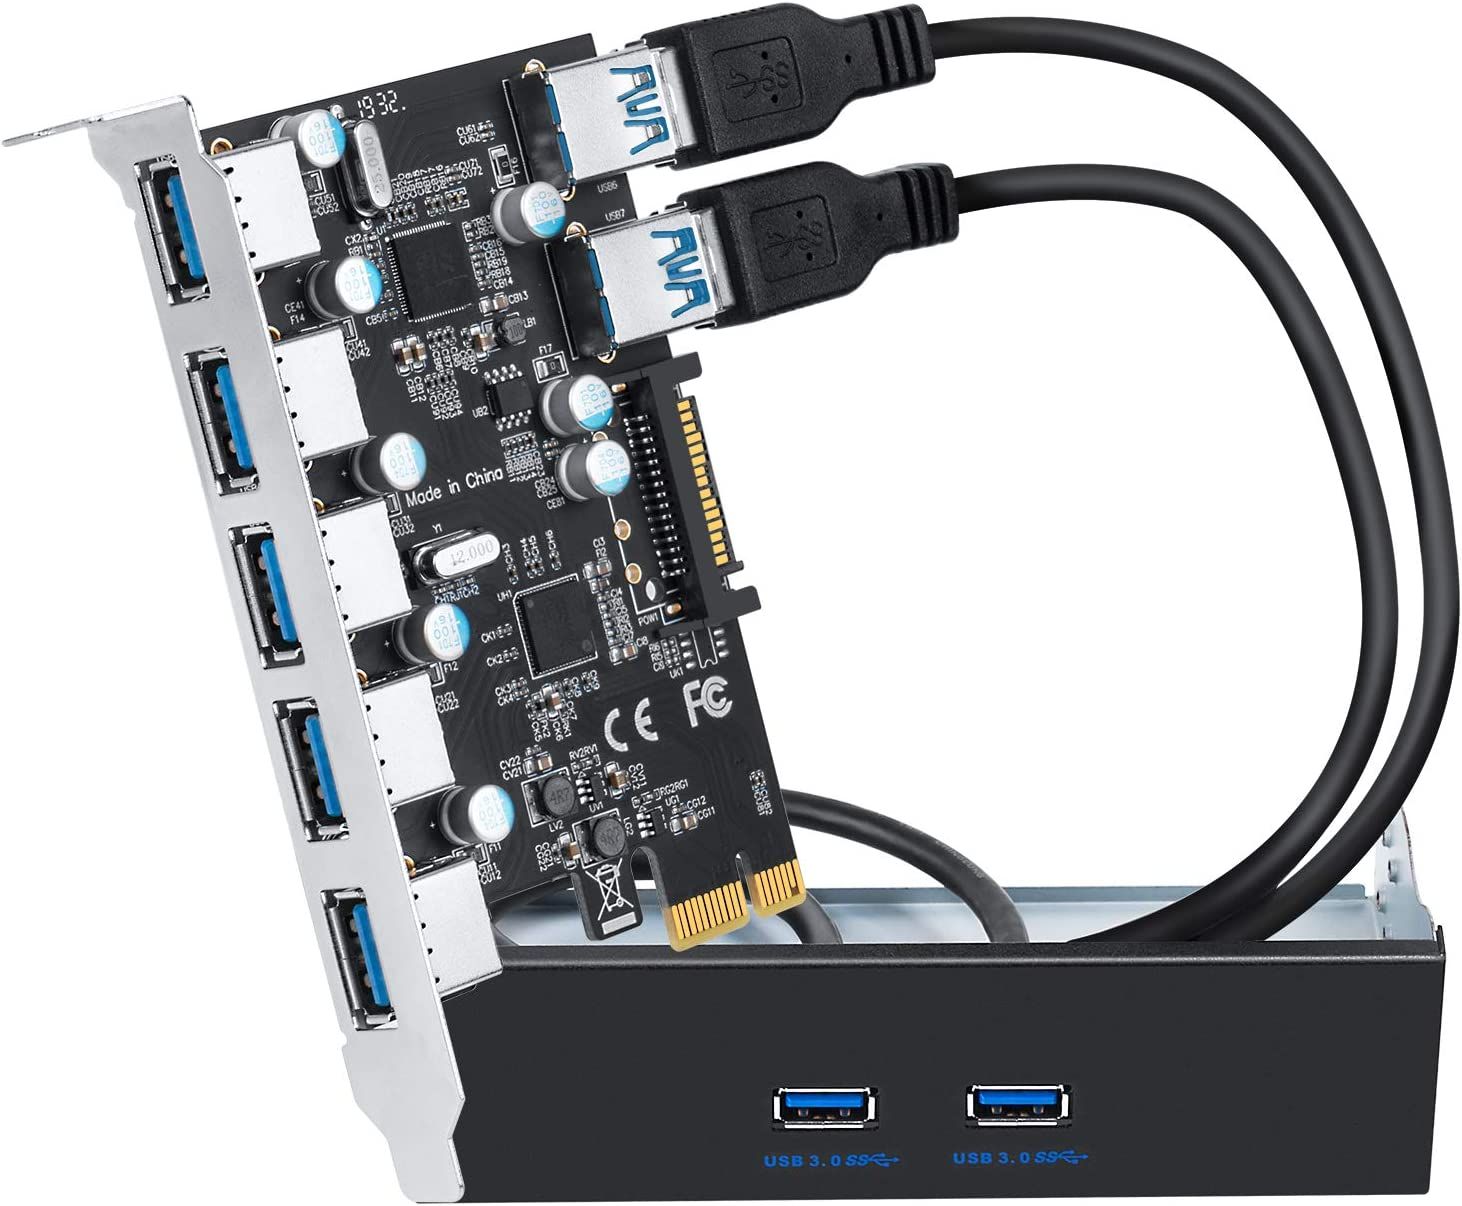 QNINE 7 Ports USB 3.0 PCIe Card Set, Include Superspeed PCI Express USB 3.0 Card and The Front Panel Bay and 2 Power Supply Cables